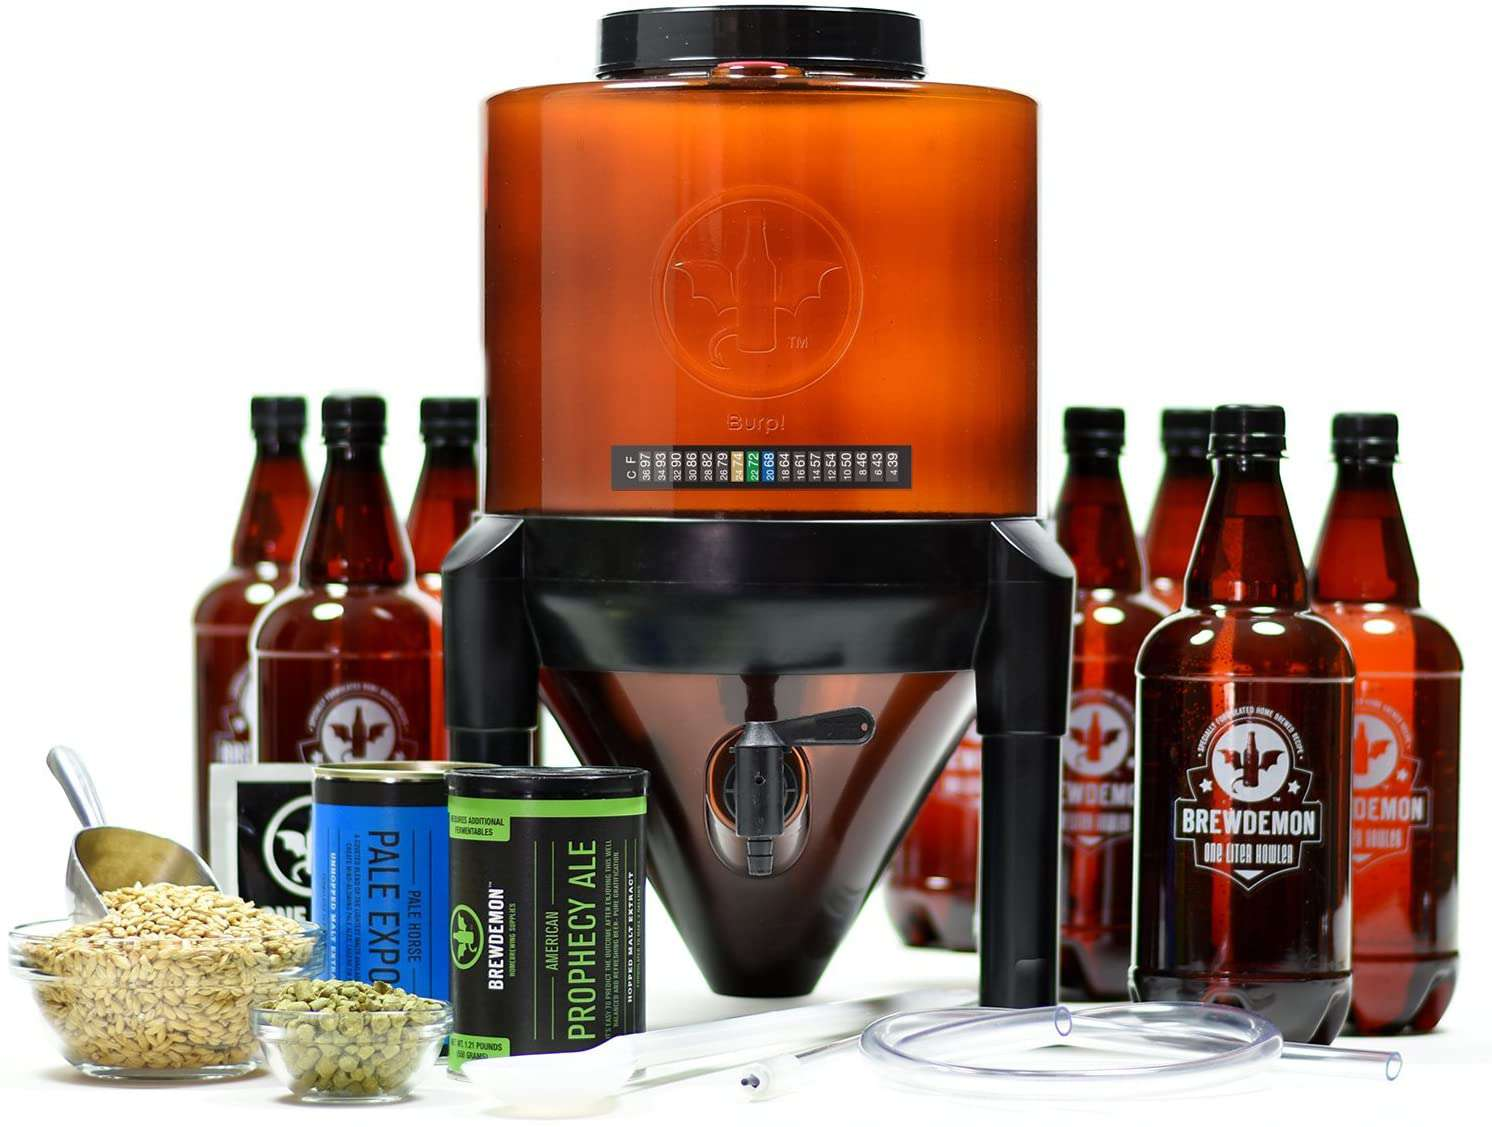 BrewDemon 2-Gallon Conical Fermenter System Brewing Kit, Prophecy Ale